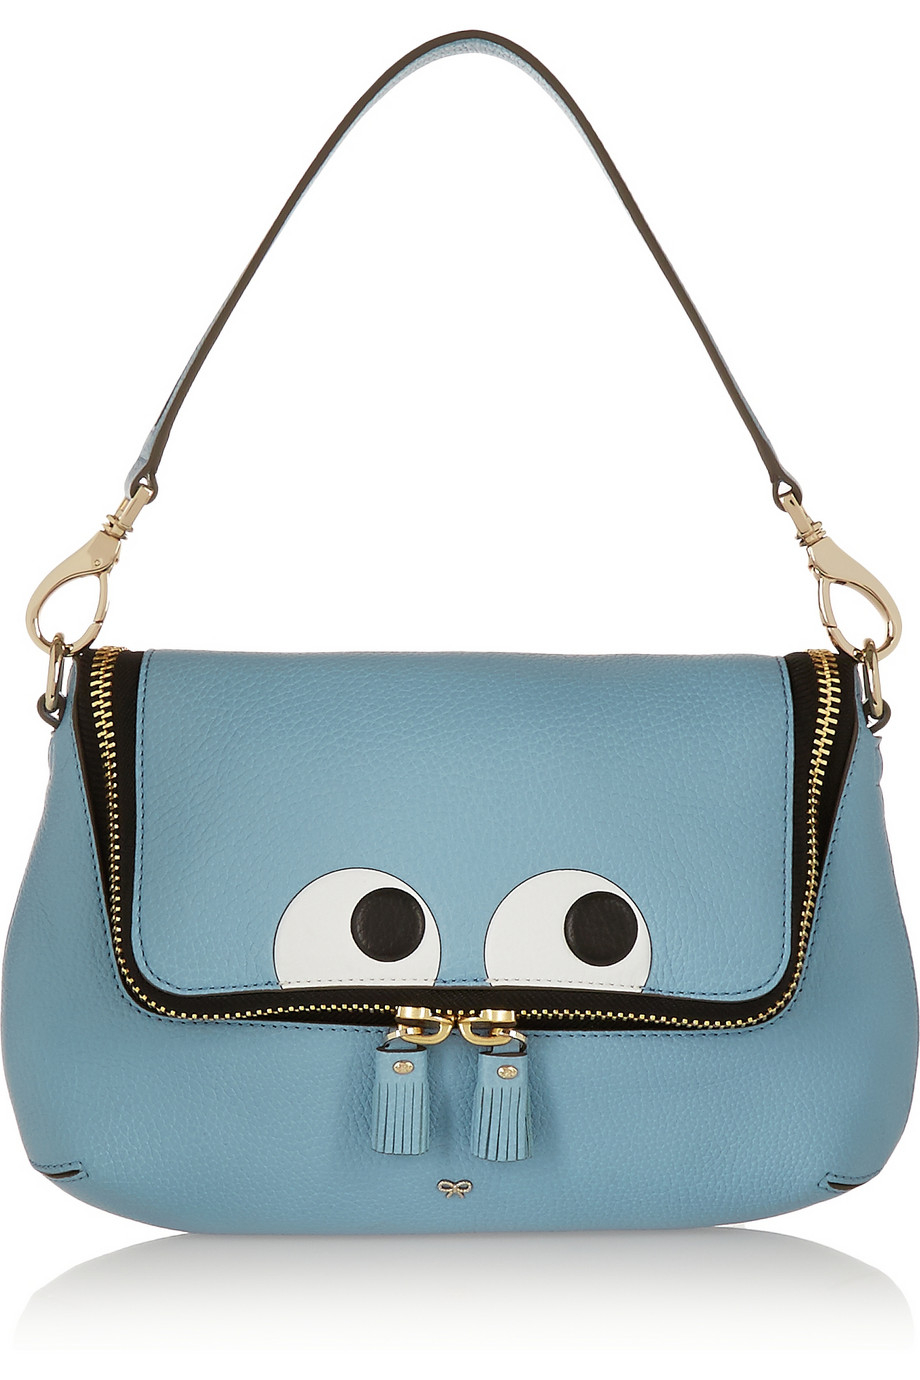 Anya hindmarch Maxi Zip Embossed Textured-Leather Shoulder ...